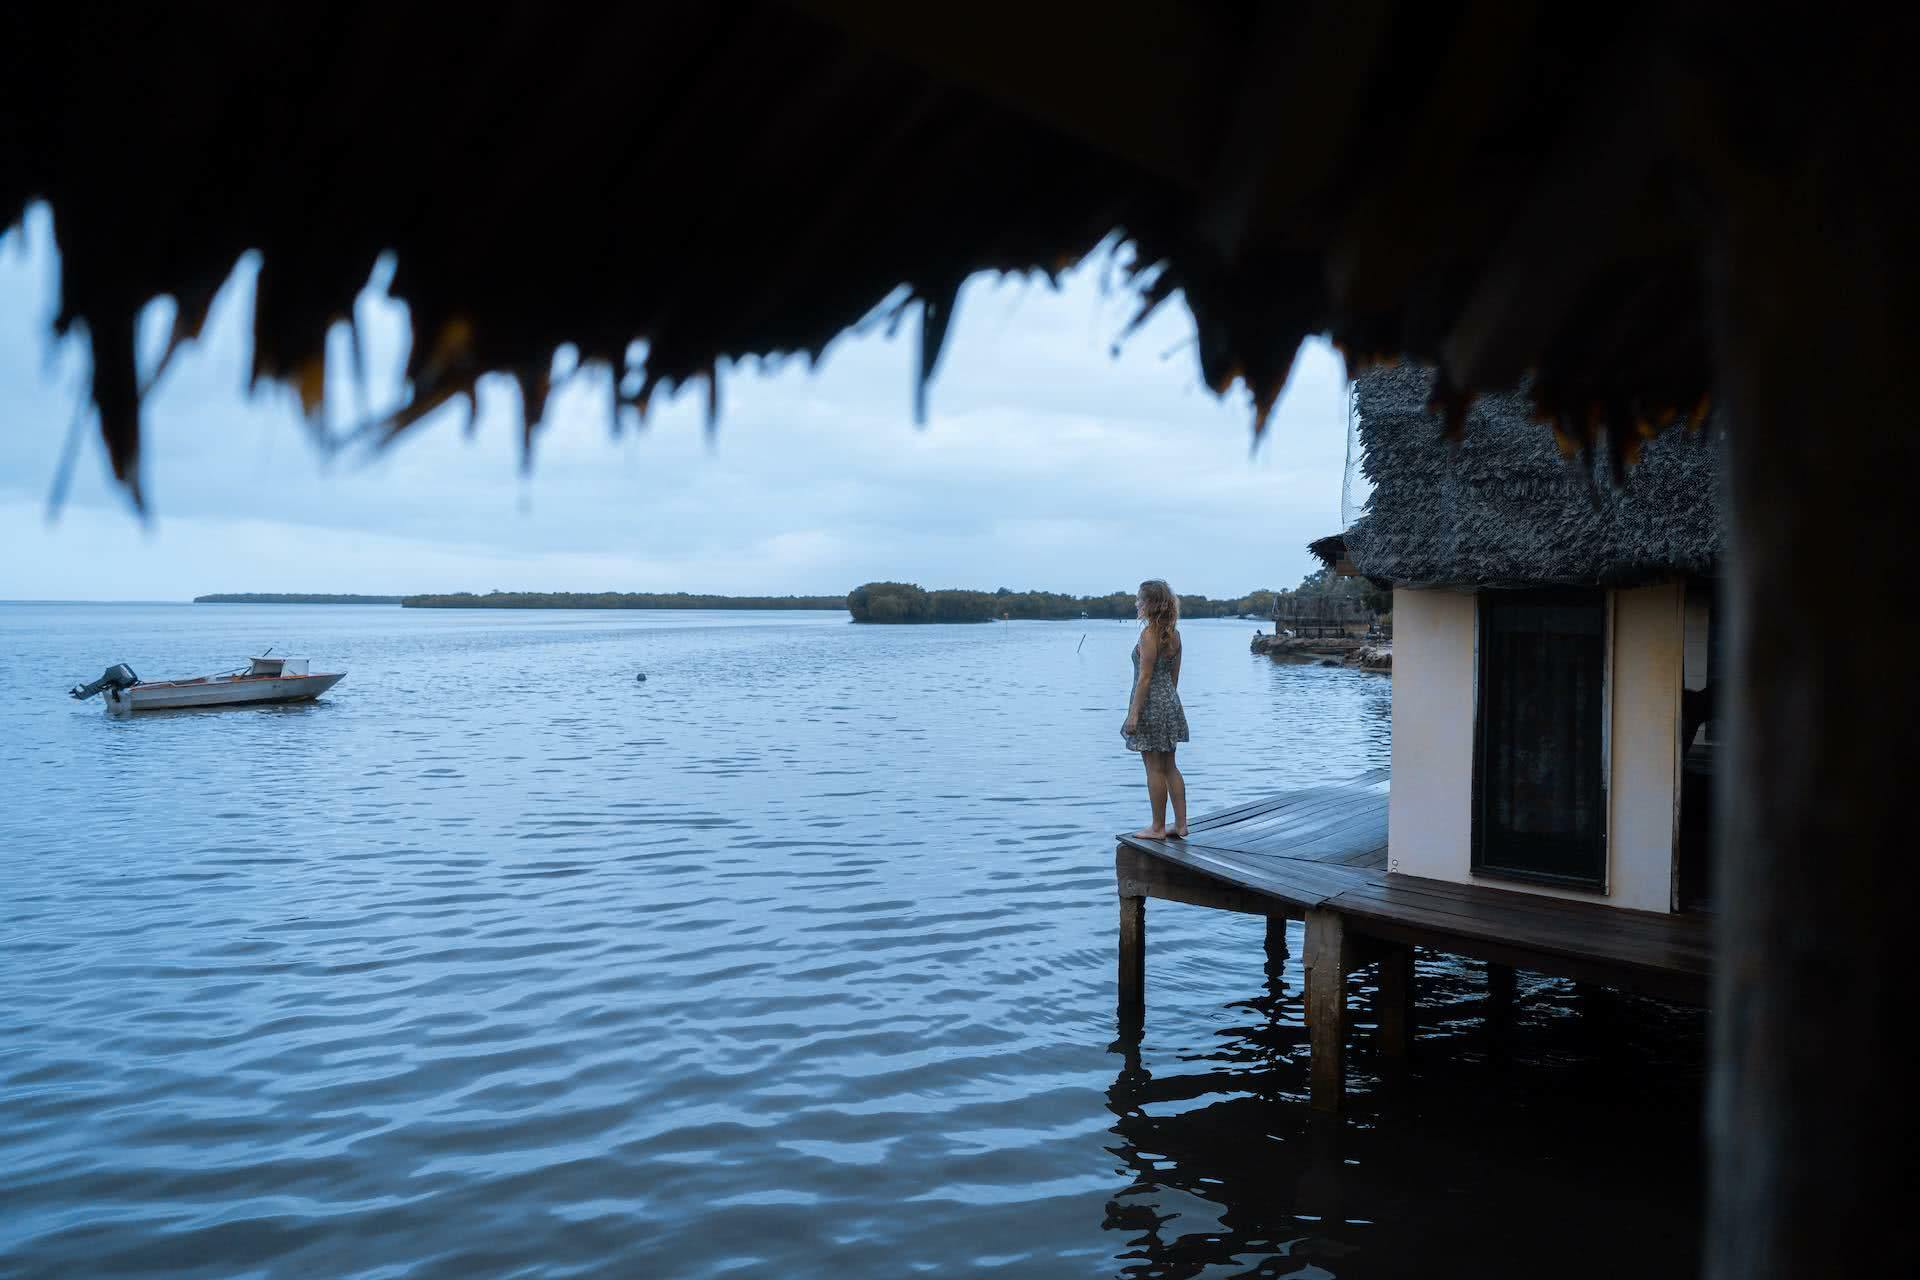 The Best Places to Stay in the Outer Islands of Vanuatu, photos by Ben Savage and Ain Raadik, Ruby Claire, Maskelyns islands Batis Seaside Bungalow, ocean, woman, accommodation